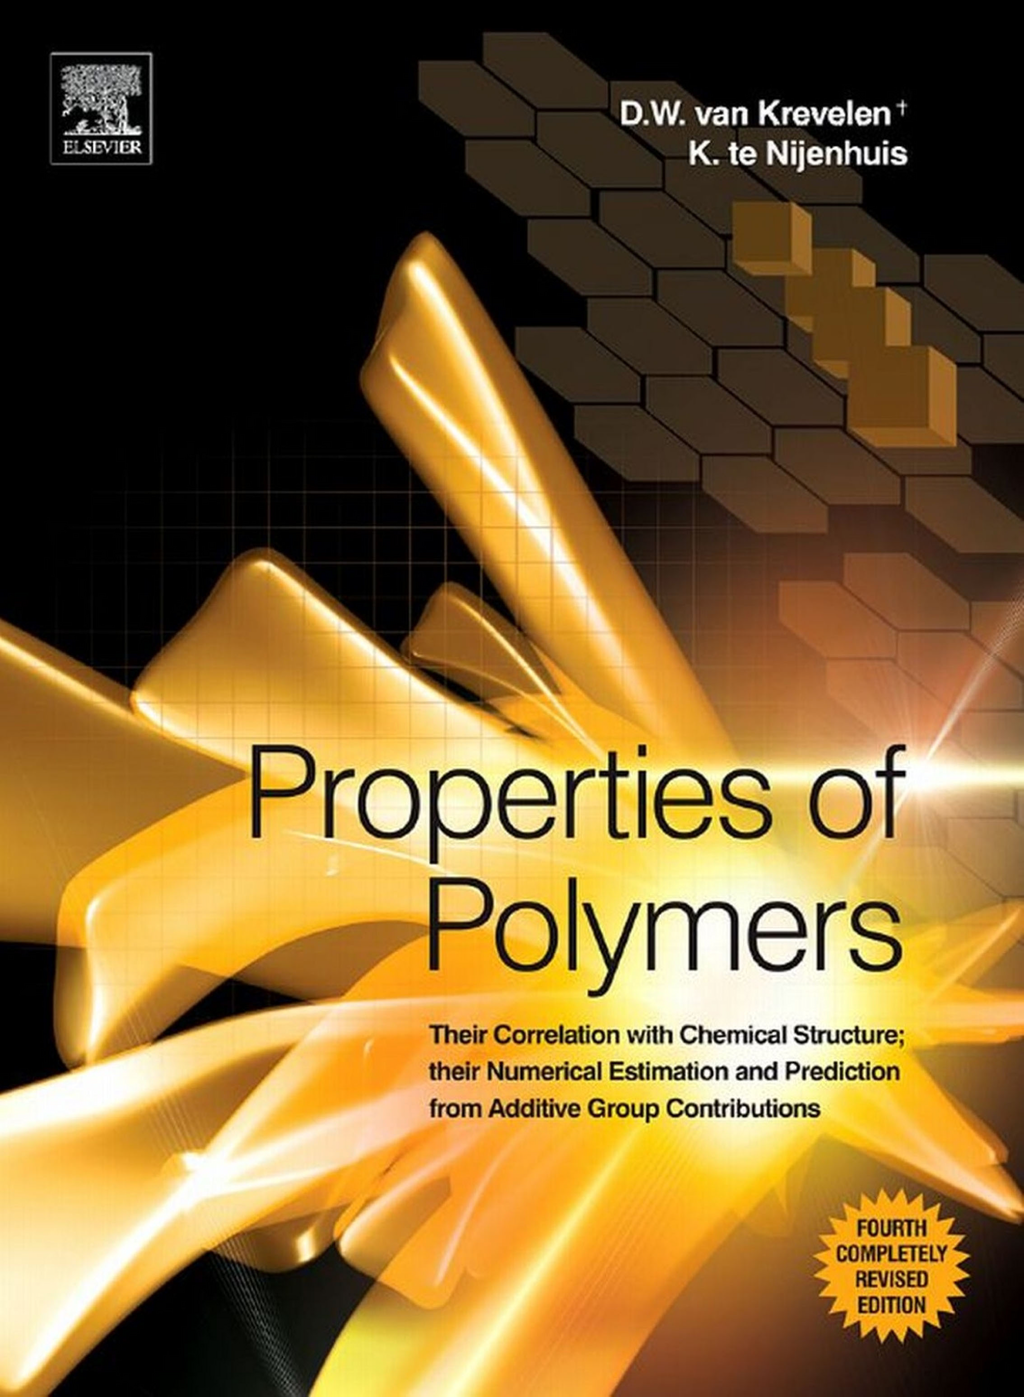 Properties of Polymers Their Correlation with Chemical Structure; their Numerical Estimation and Prediction from Additive Group Contributions